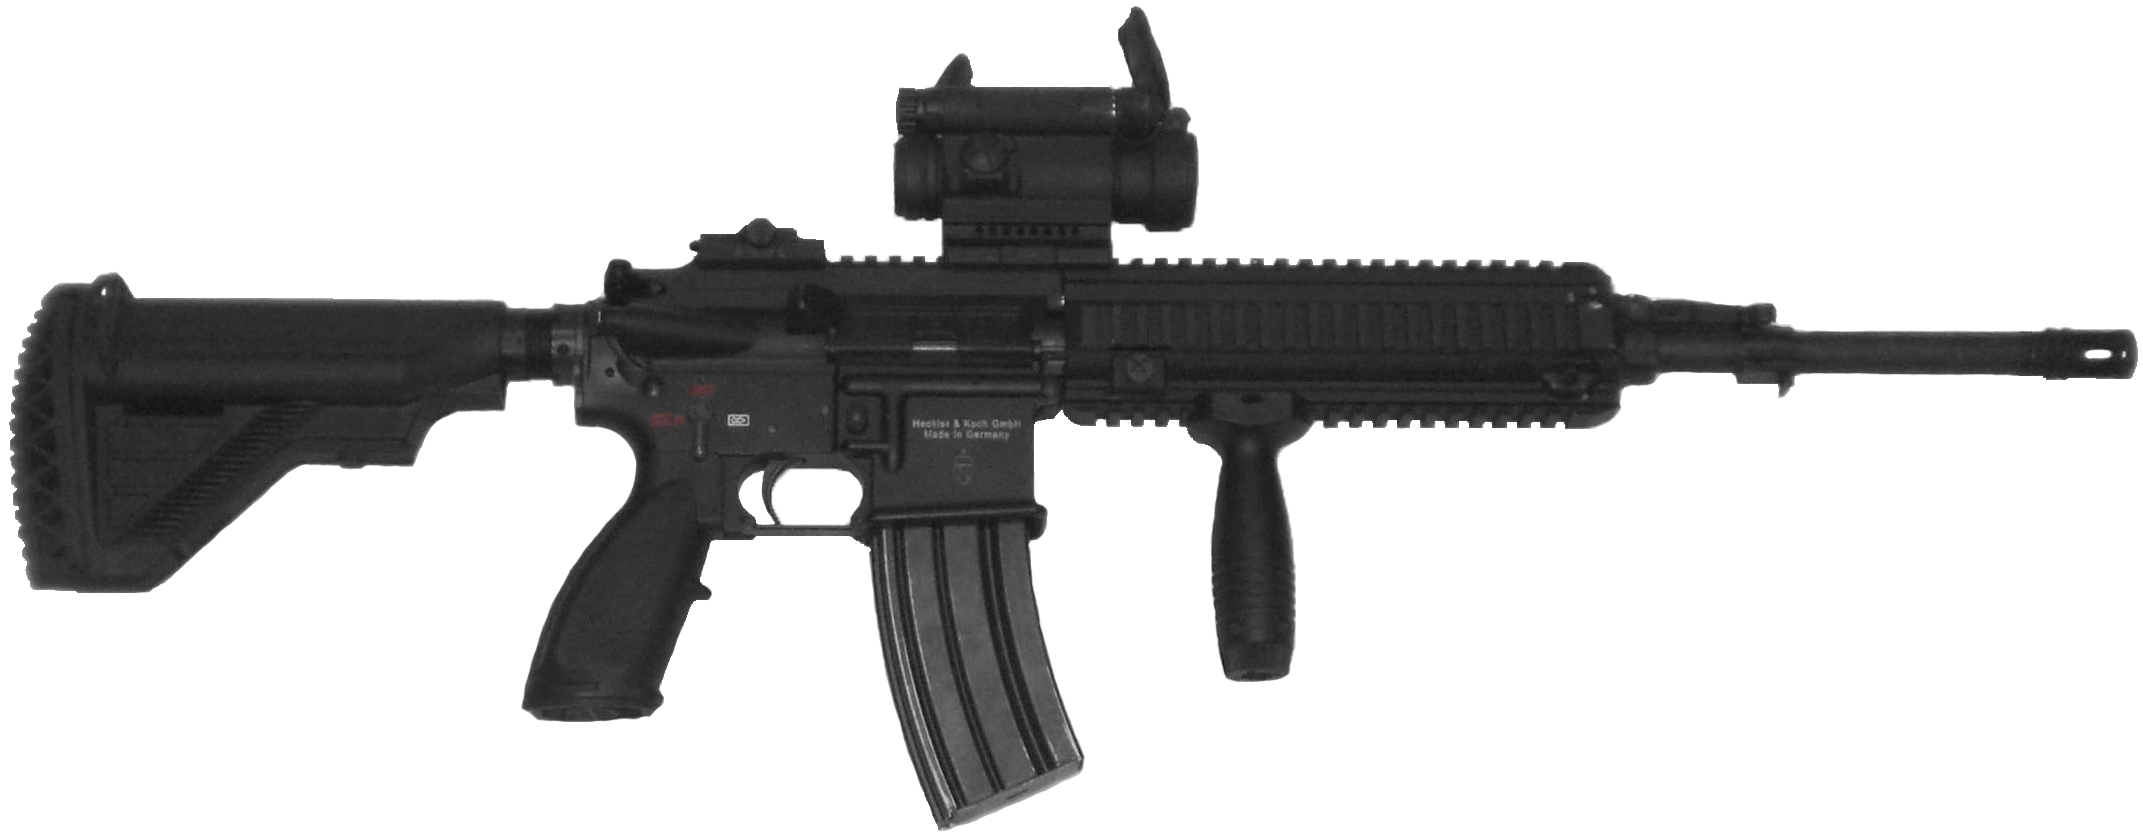 Assault Rifle clipart #5, Download drawings